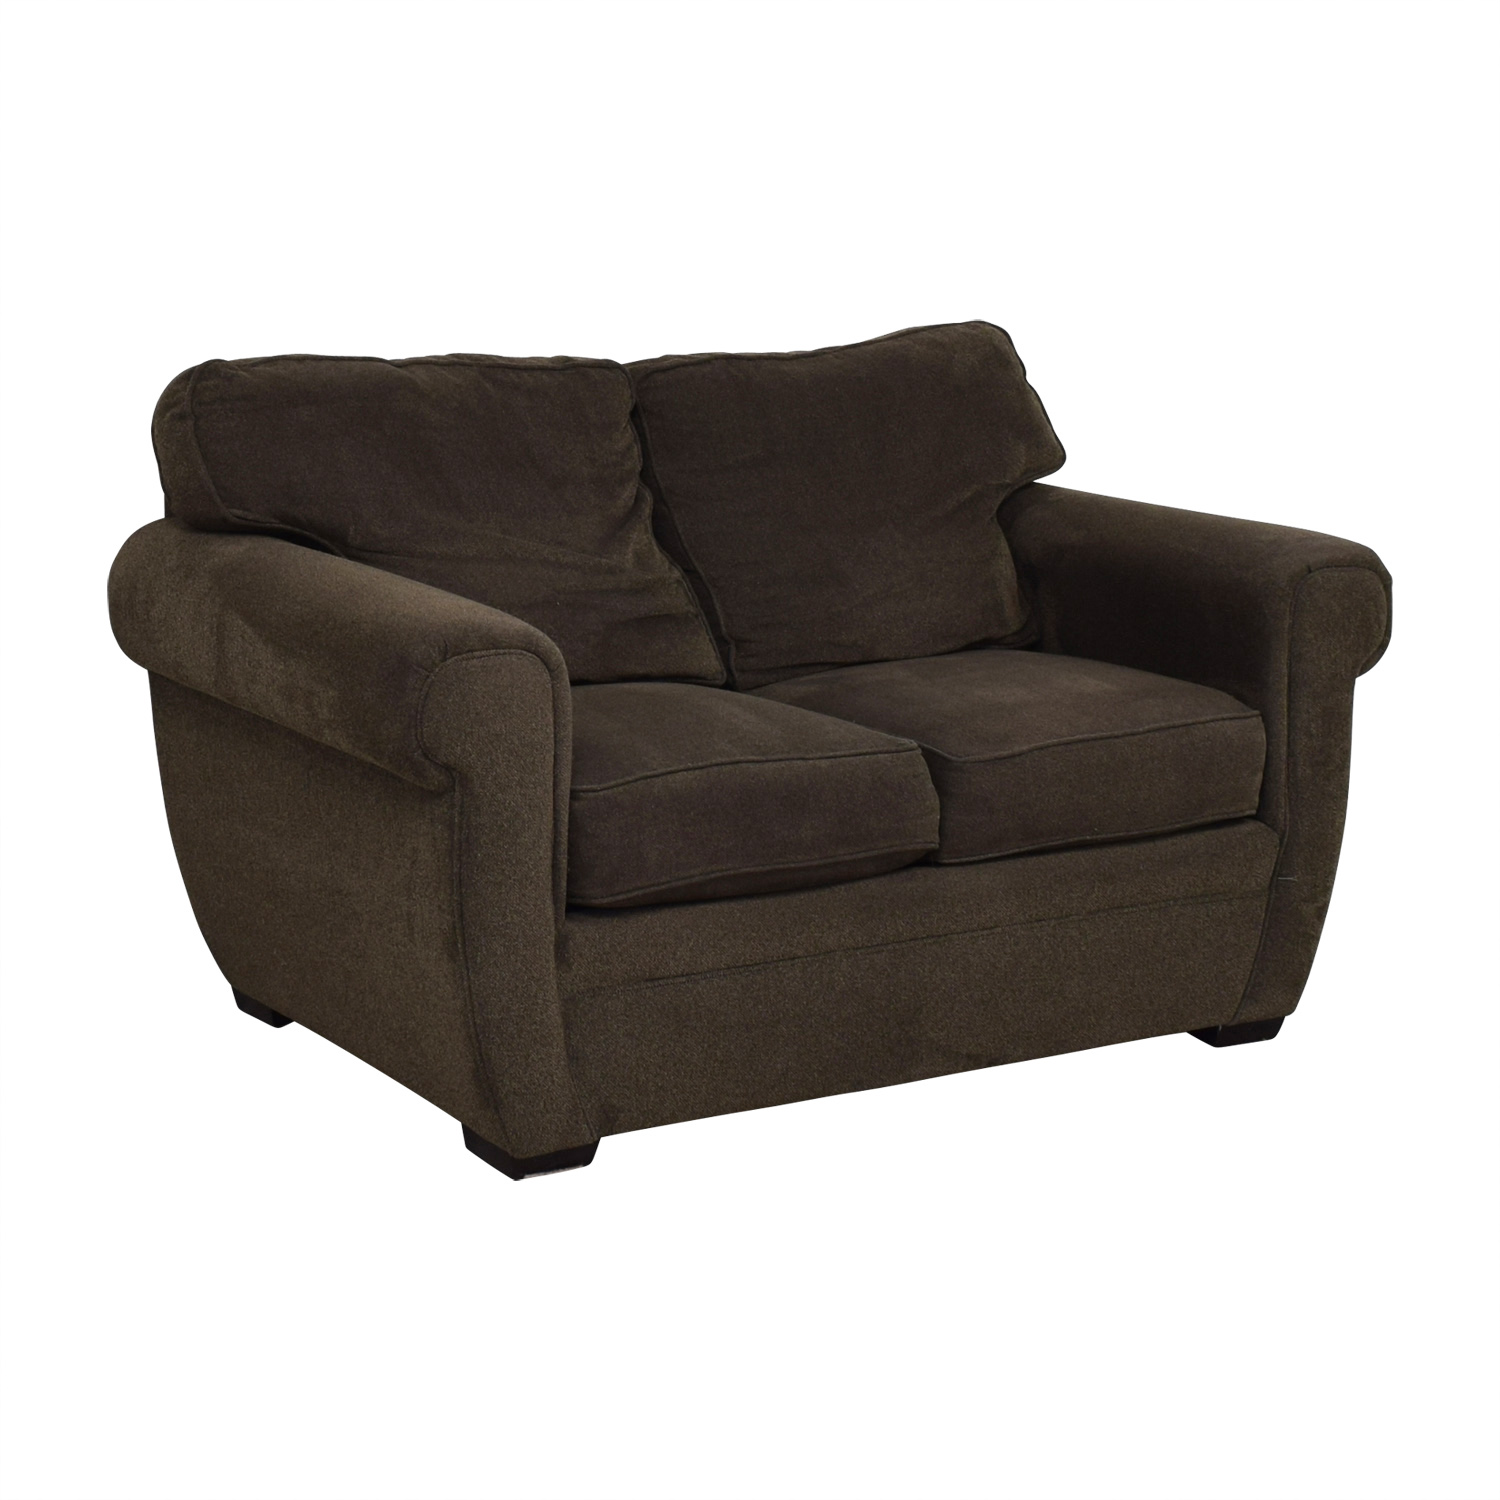 Broyhill Broyhill Brown Loveseat discount